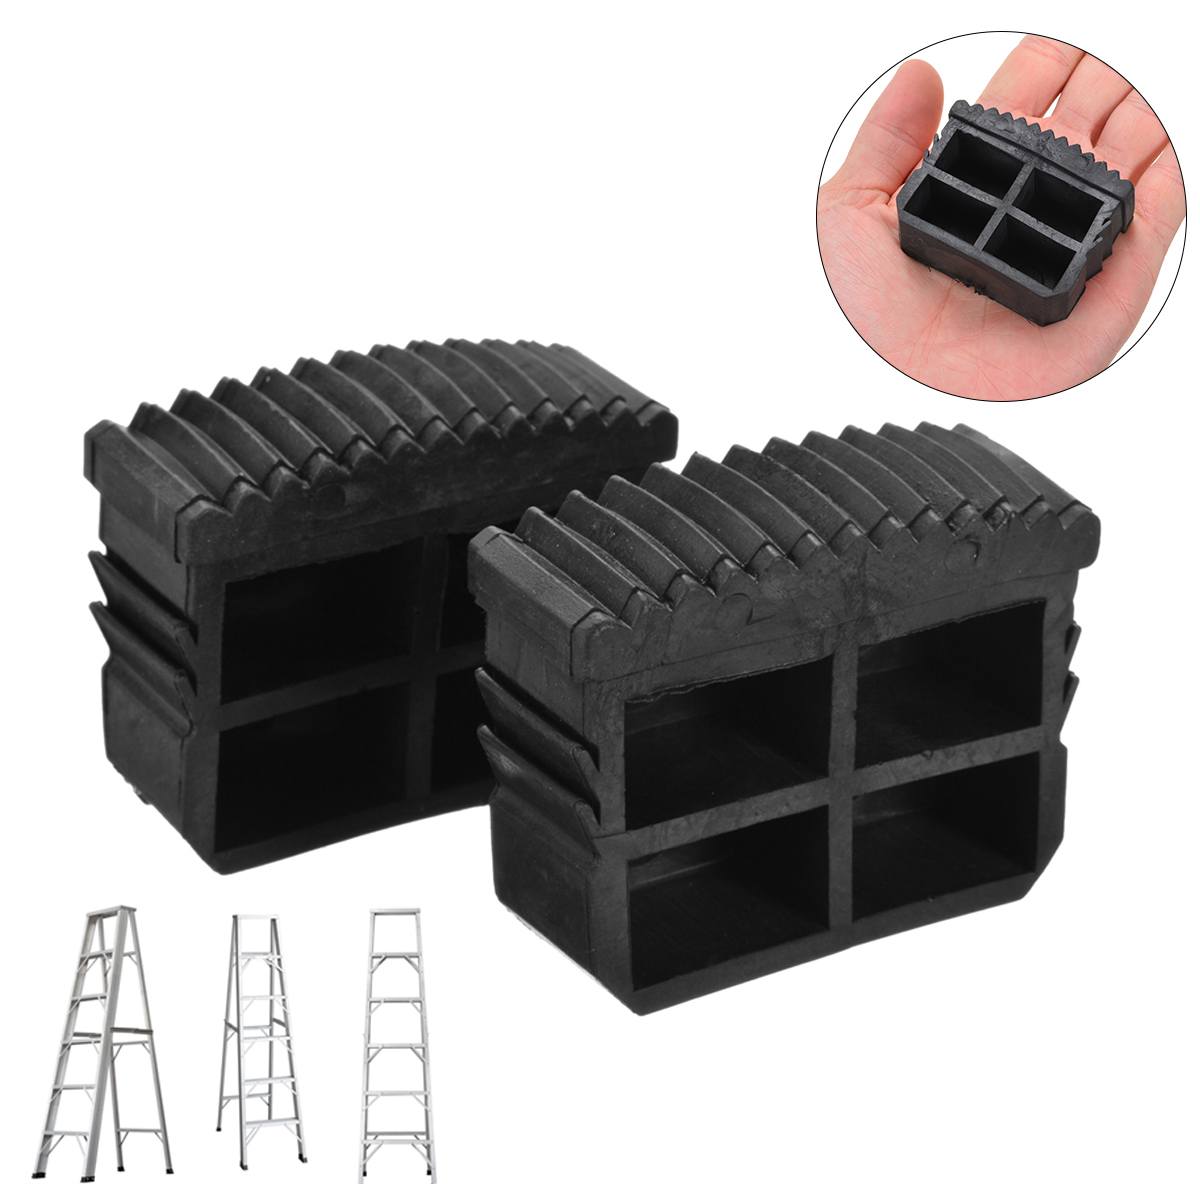 2pcs Black Rubber Step Ladder Feet Non Slip Folding Ladder Foot Replacement Grip Antiskid Inner Plug Cover Ladder Accessories